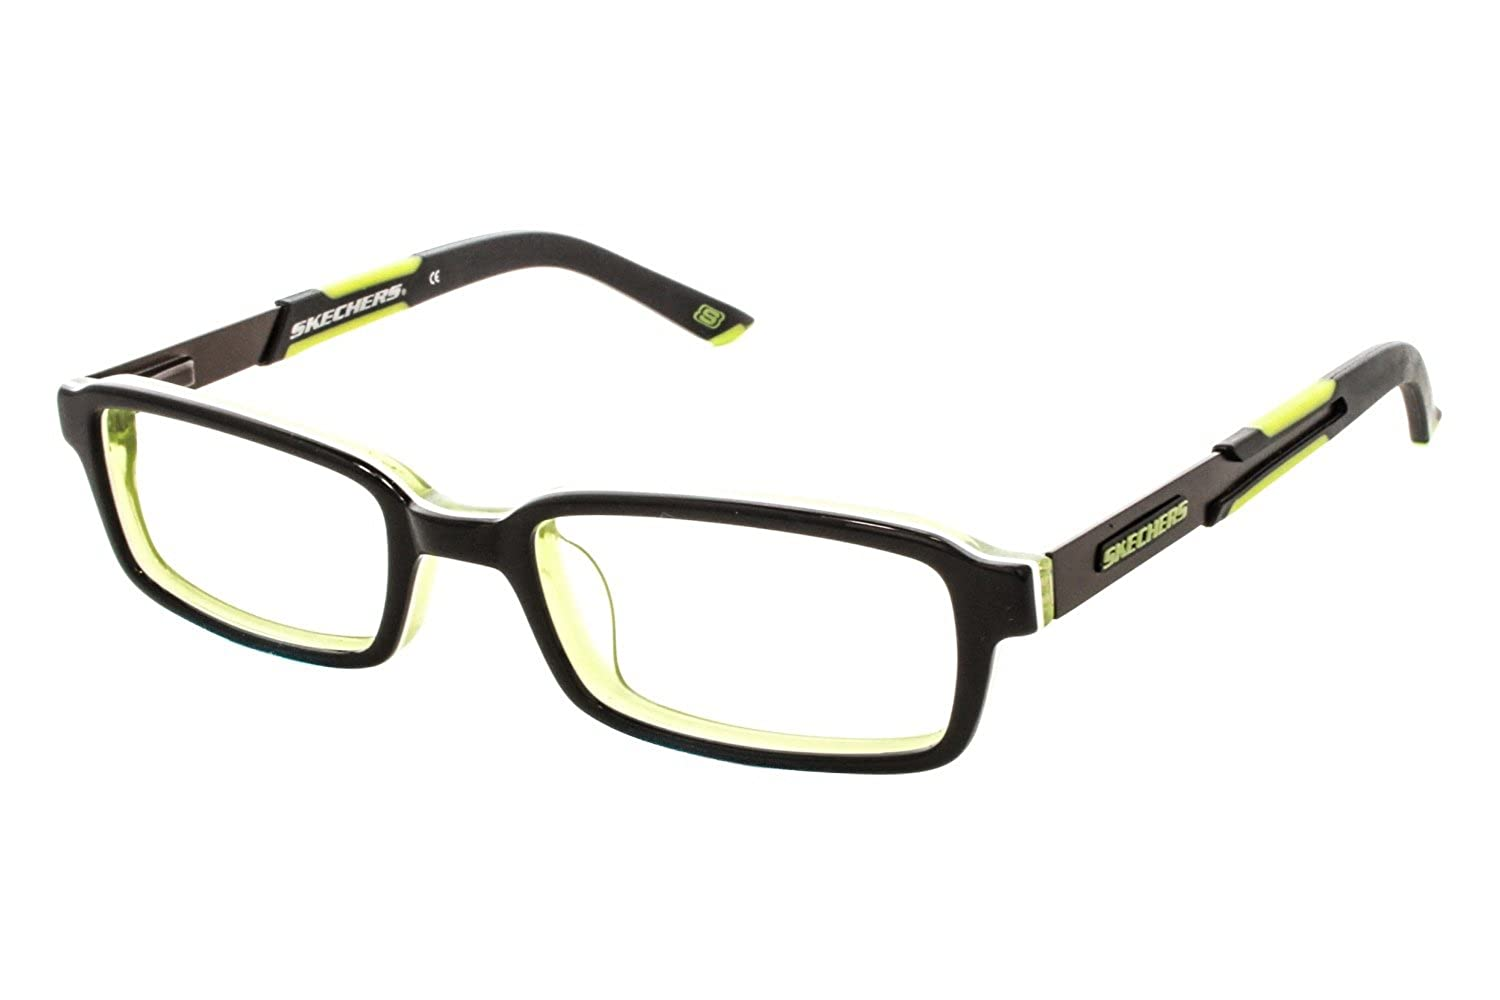 Amazon.com: SKECHERS Eyeglasses SK 1027 Black Green 44MM: Clothing